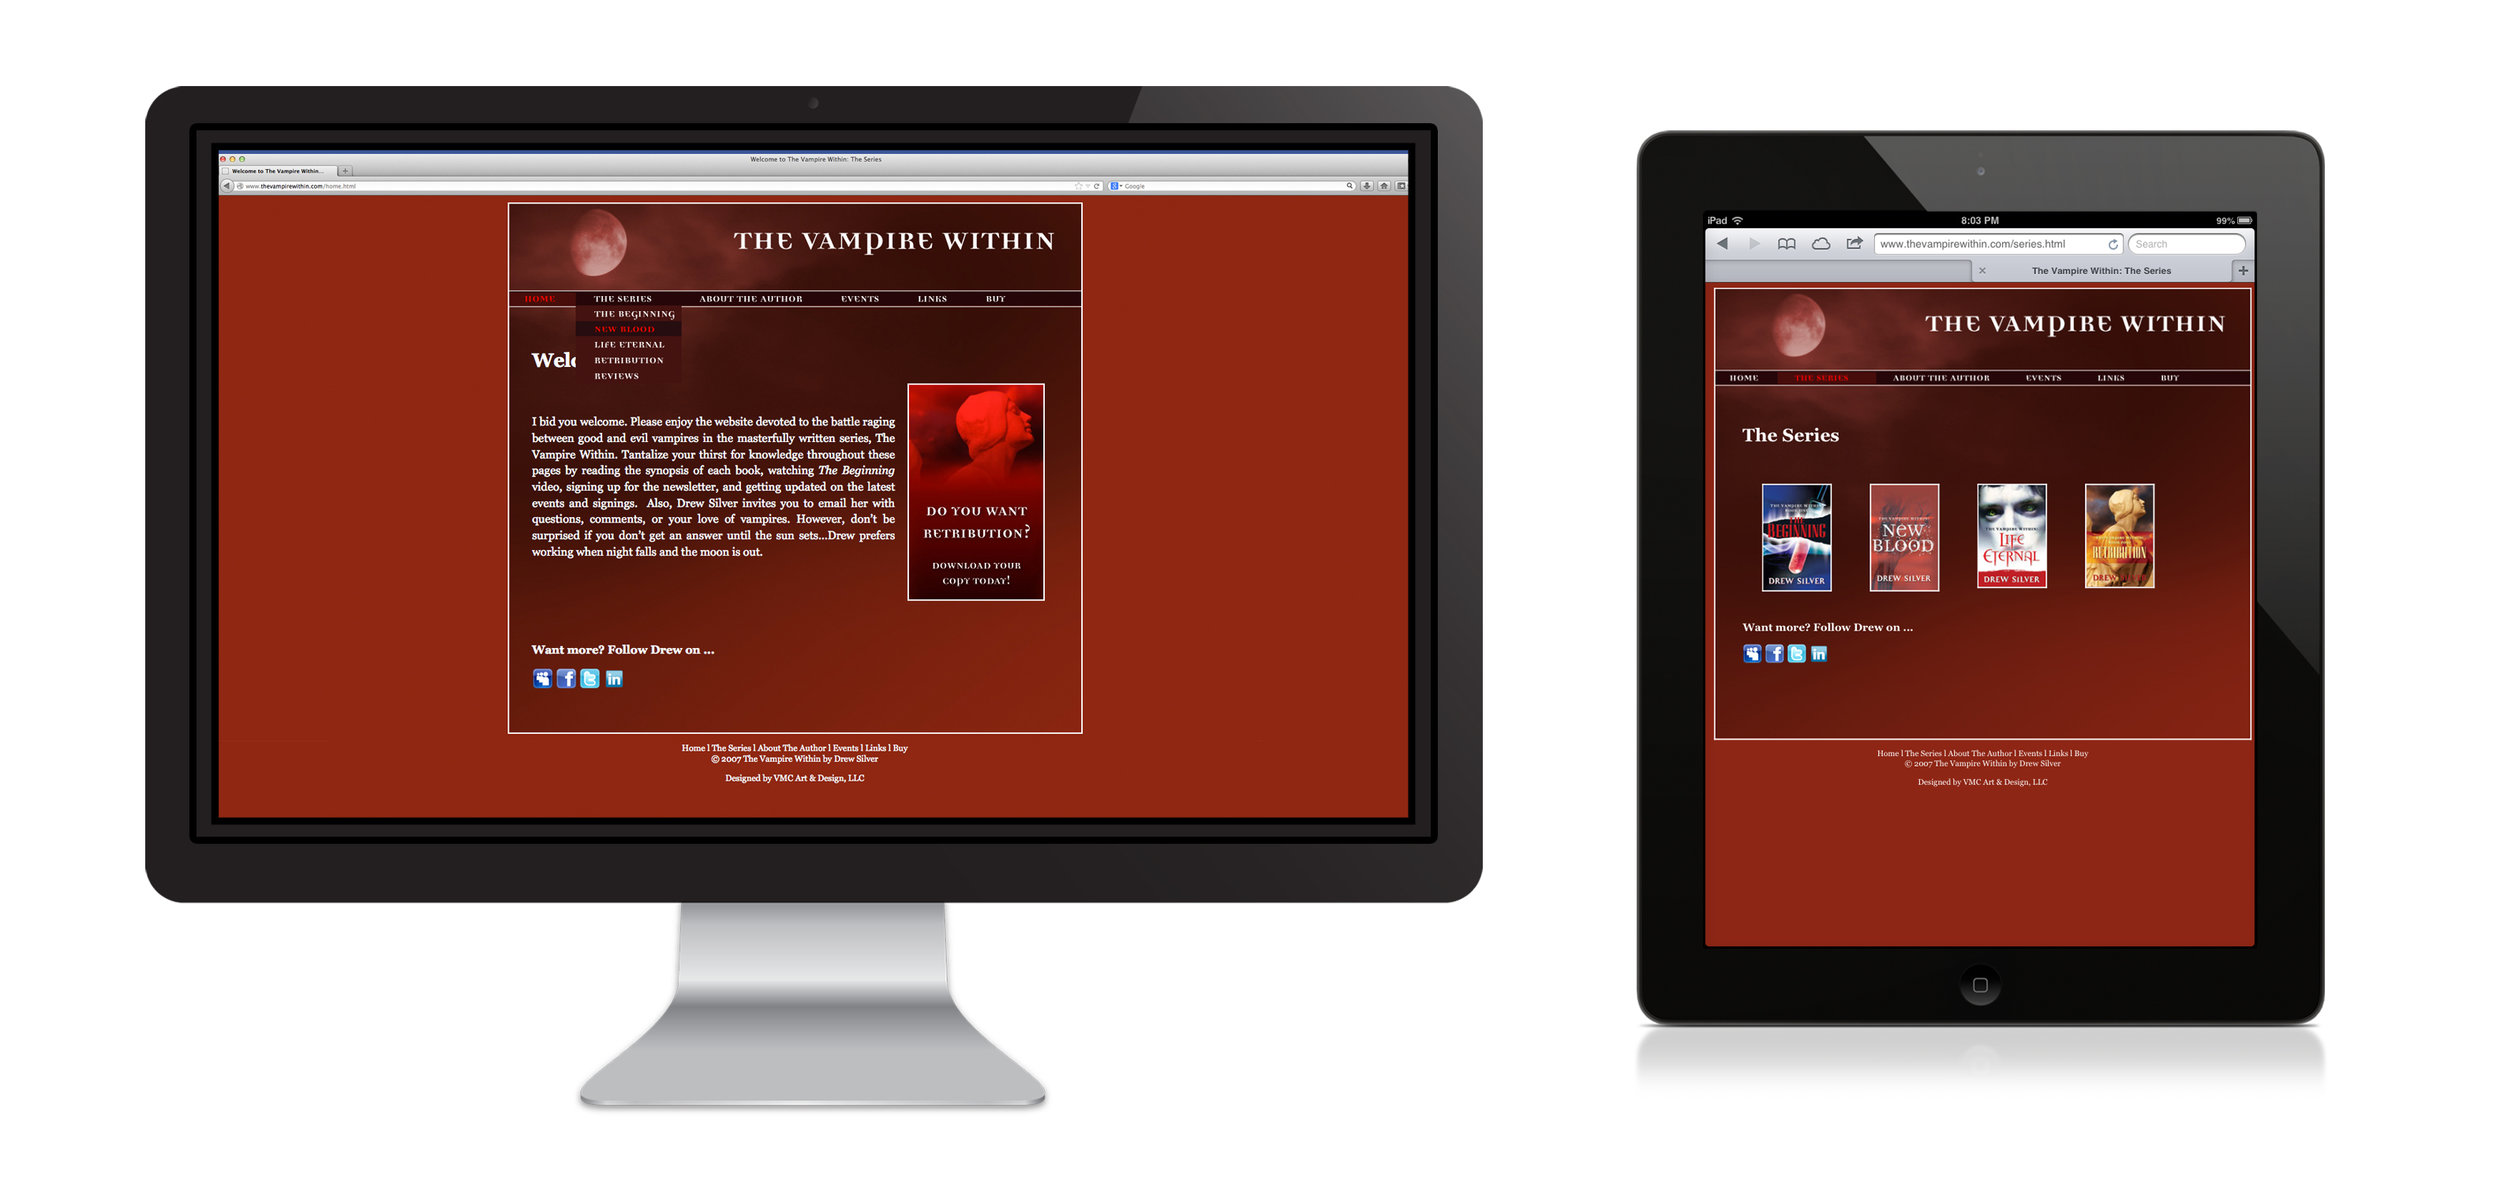 www.thevampirewithin.com